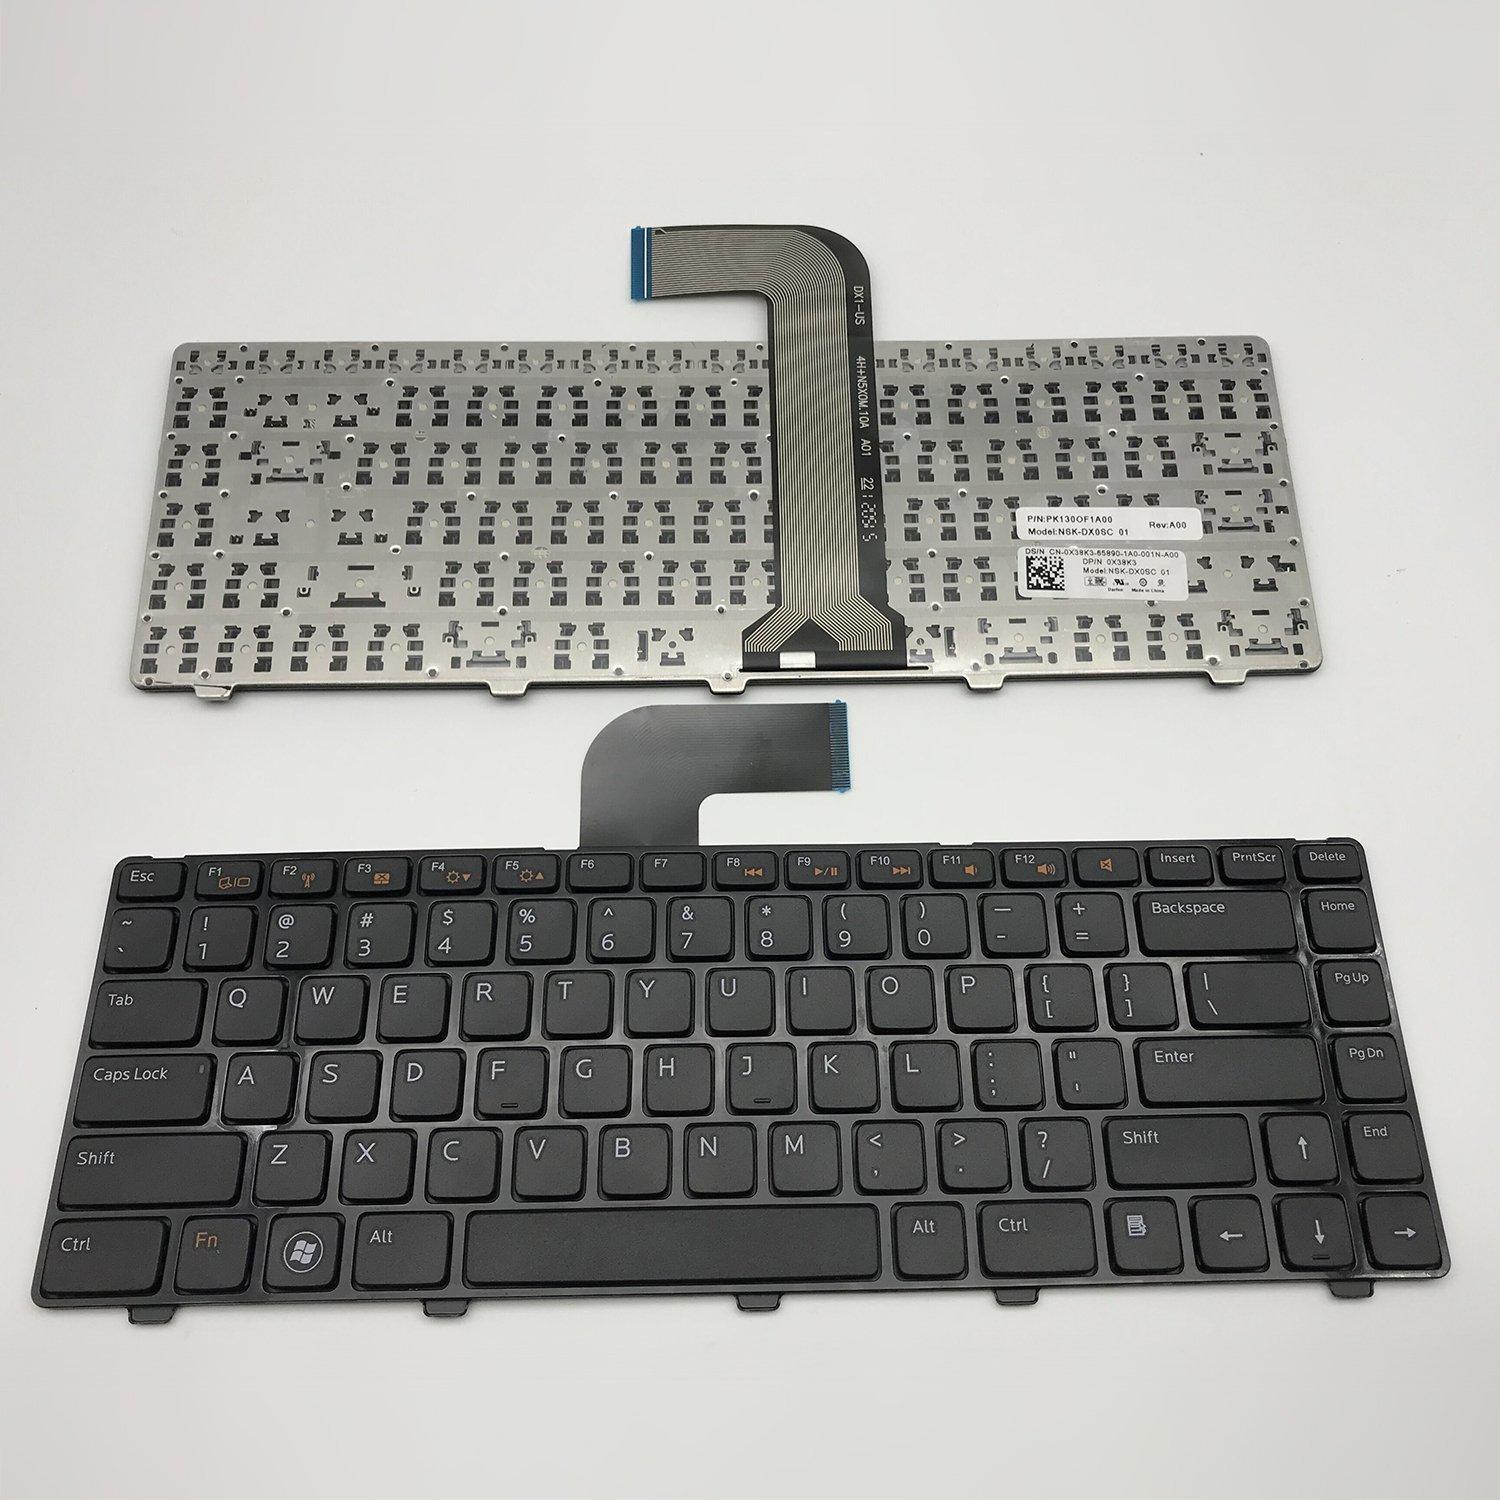 Sierra Blackmon Replacement Keyboard Non-backlit for Dell INSPIRON 14R N4110 M4110 N4050 M4040 M5040 M5050 N5040 N5050 N4410 M411R VOSTRO 3450 3550 V3450 V3550 XPS X501L x502L L502 series Black US Lay